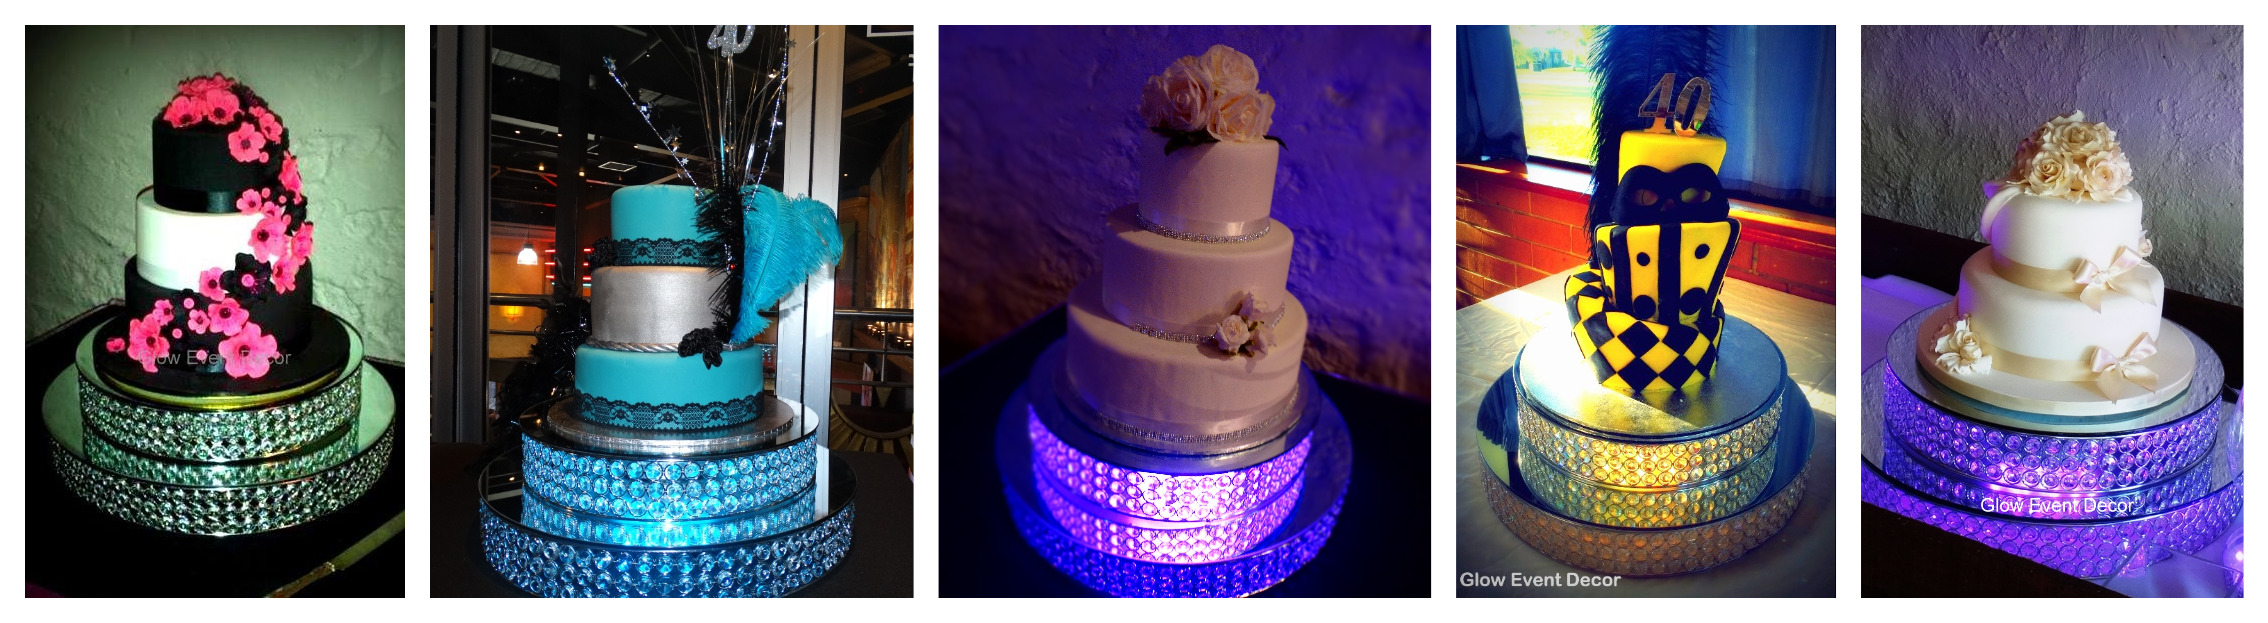 Light up LED two tier crystal cake stands for hire glow event decor adelaide